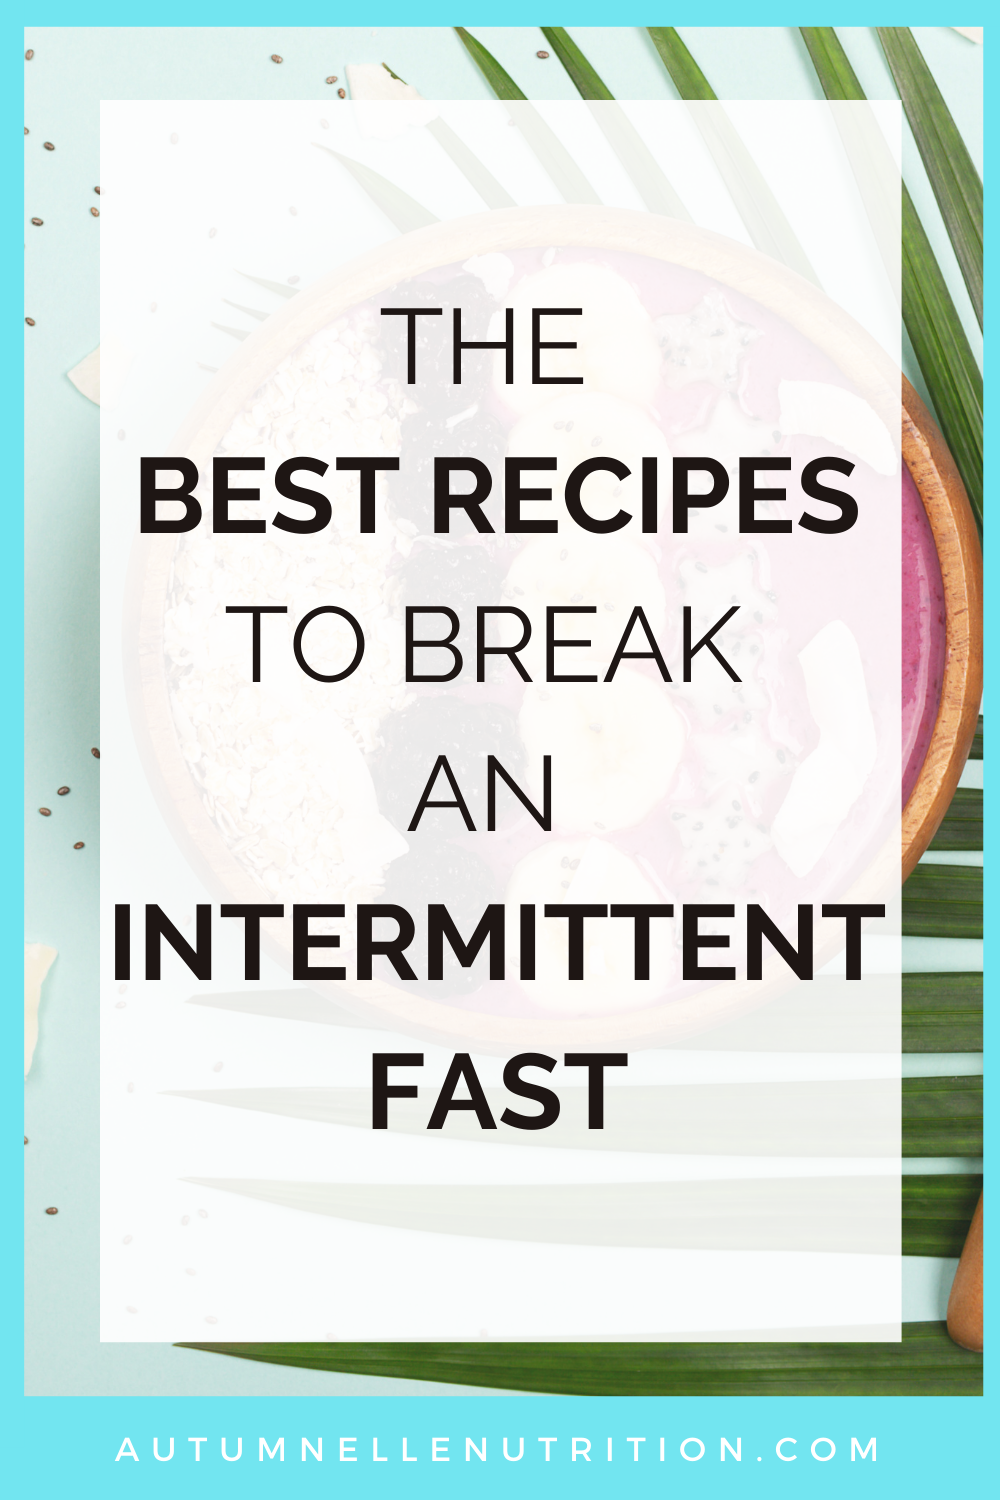 The best foods to break an intermittent fast